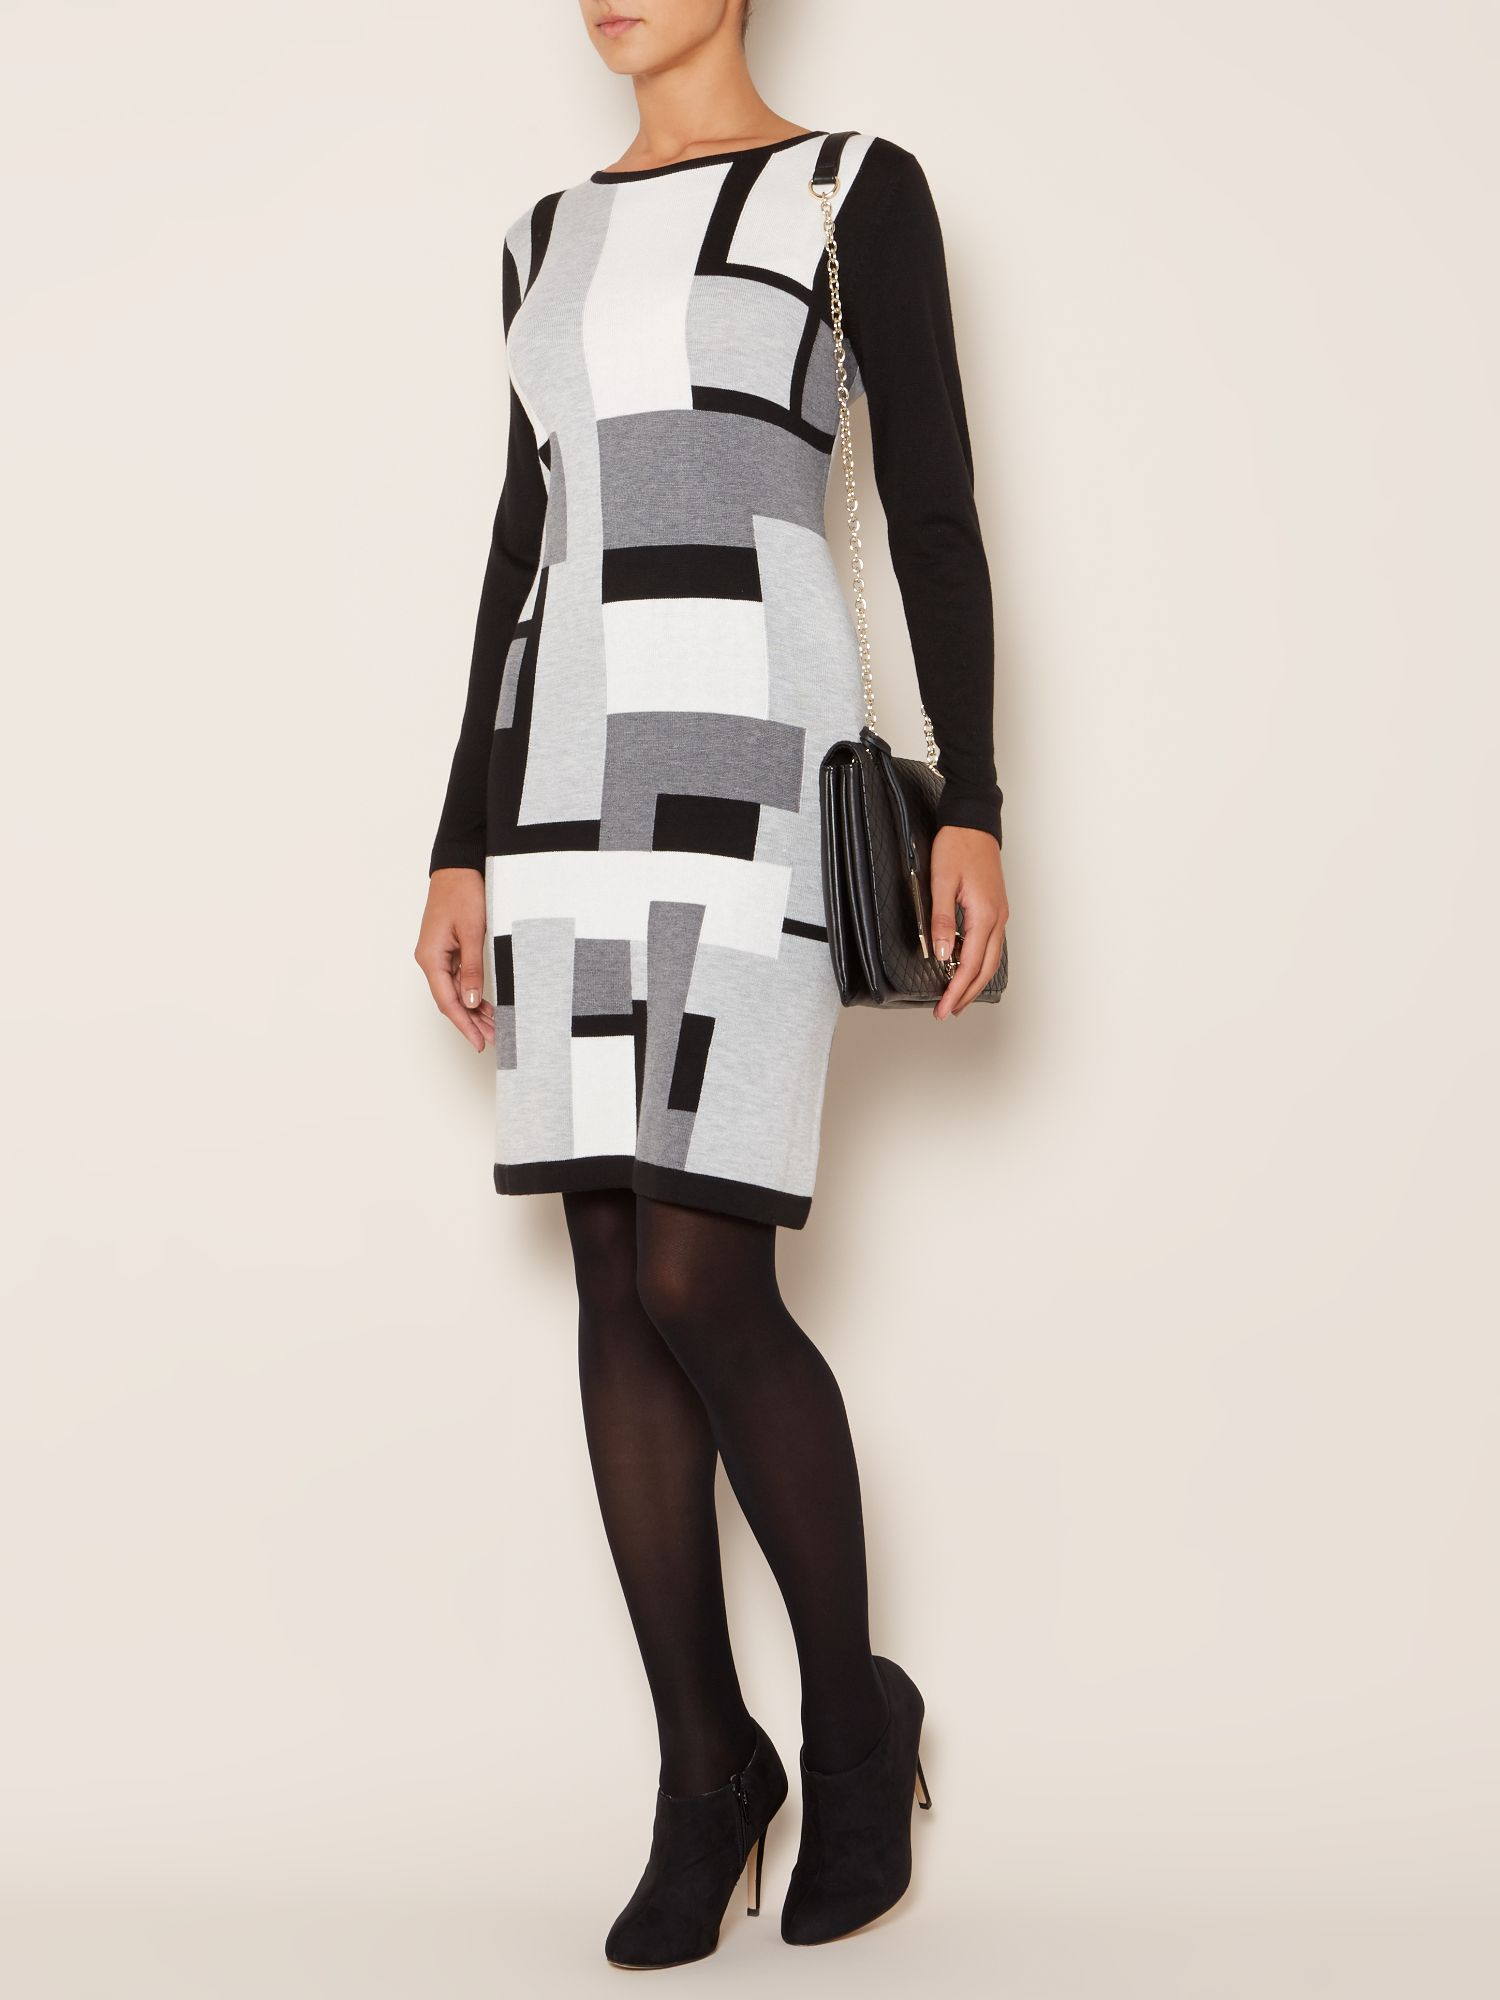 Intarsia block dress